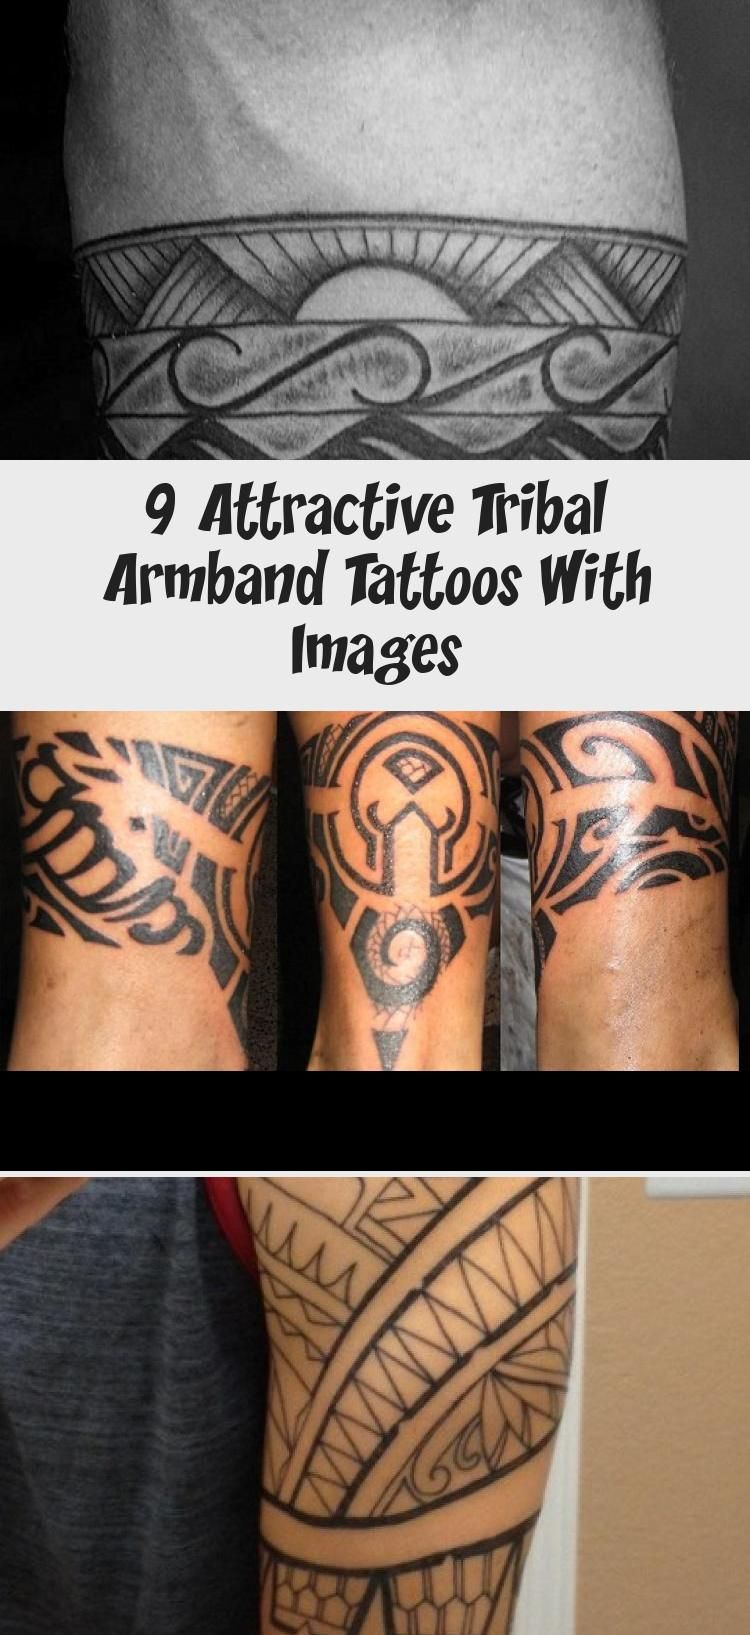 9 Attractive Tribal Armband Tattoos With Images In 2020 Tribal Armband Tattoo Tribal Armband Arm Band Tattoo